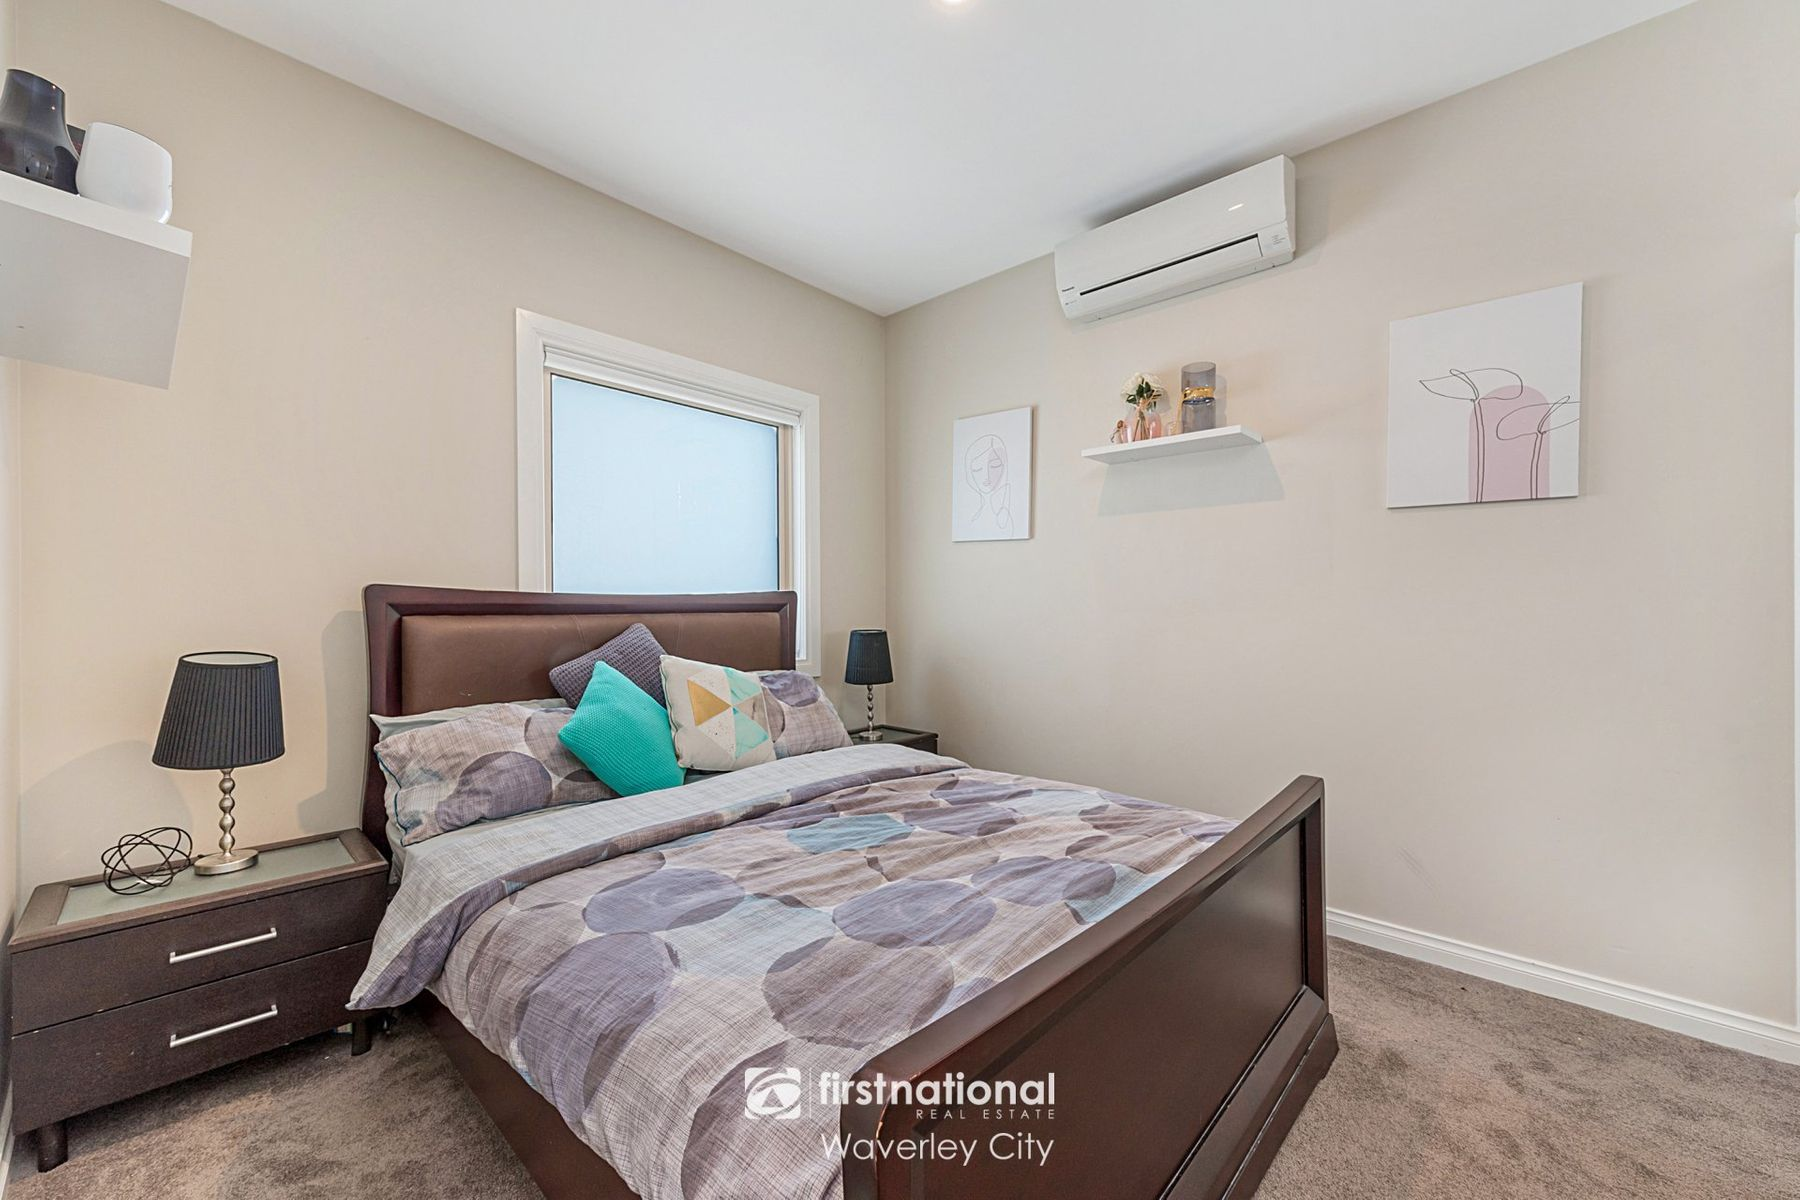 2/21 Hallows Street, Glen Waverley, VIC 3150